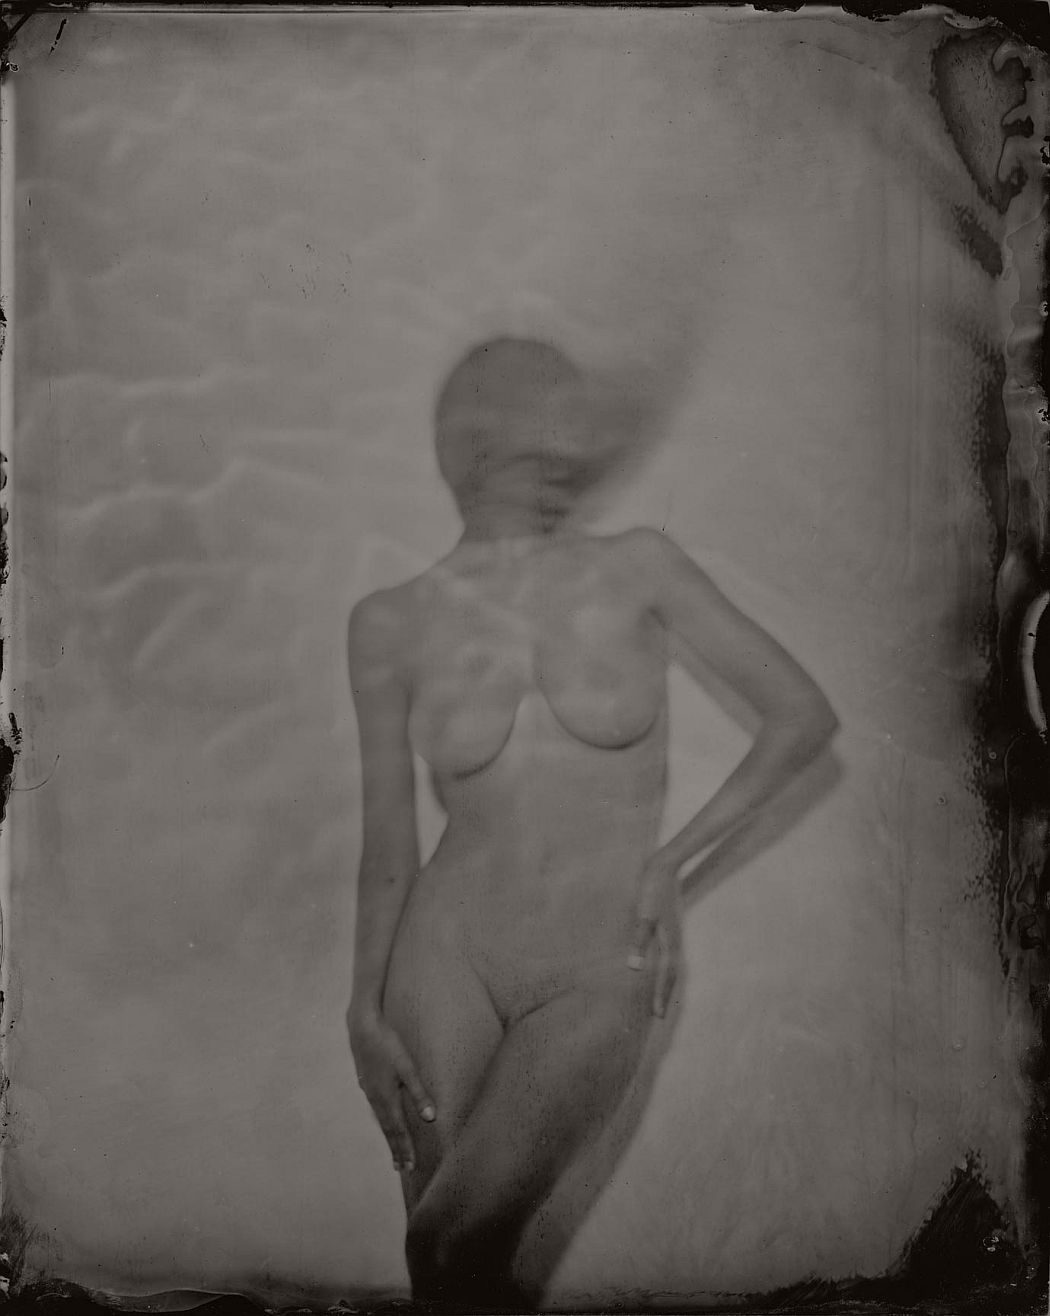 nude-ambrotypes-by-james-weber-02